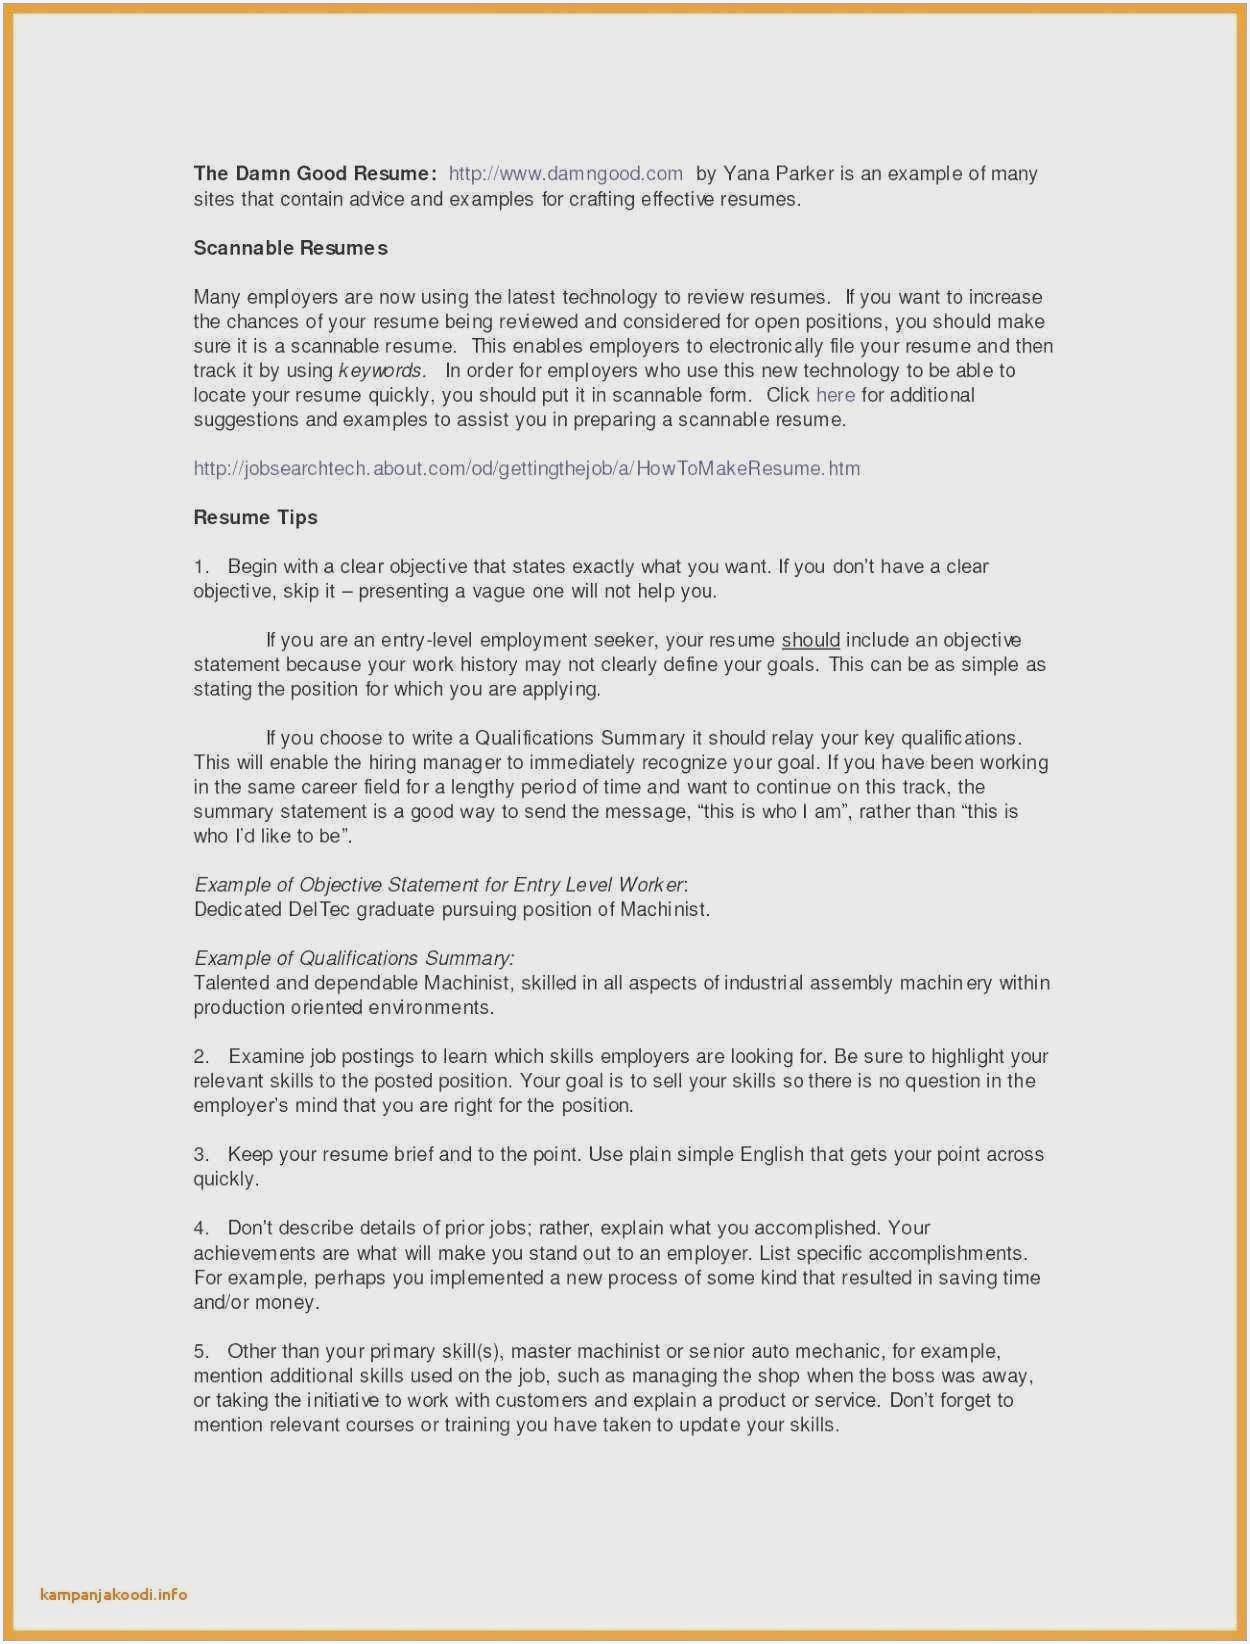 sample resume for electrical engineer fresh graduate fresher certified medical assistant Resume Fresher Electrical Engineer Resume Sample